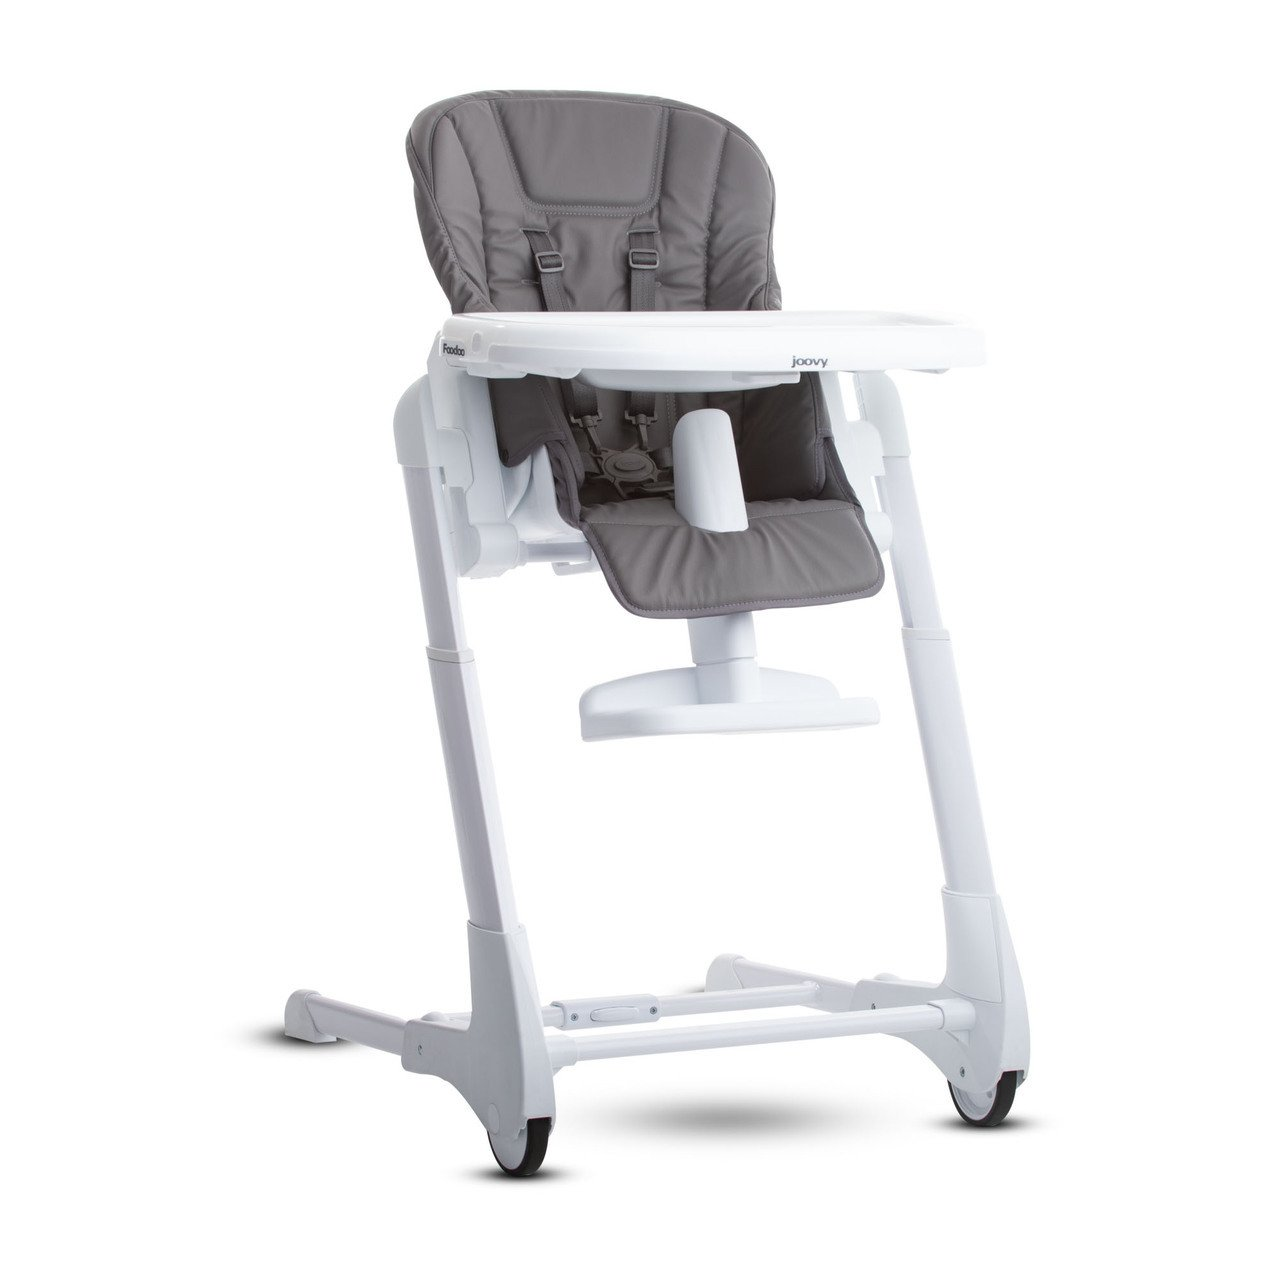 Incredible Best Camping High Chair For Babies 2019 Buyers Guide Short Links Chair Design For Home Short Linksinfo